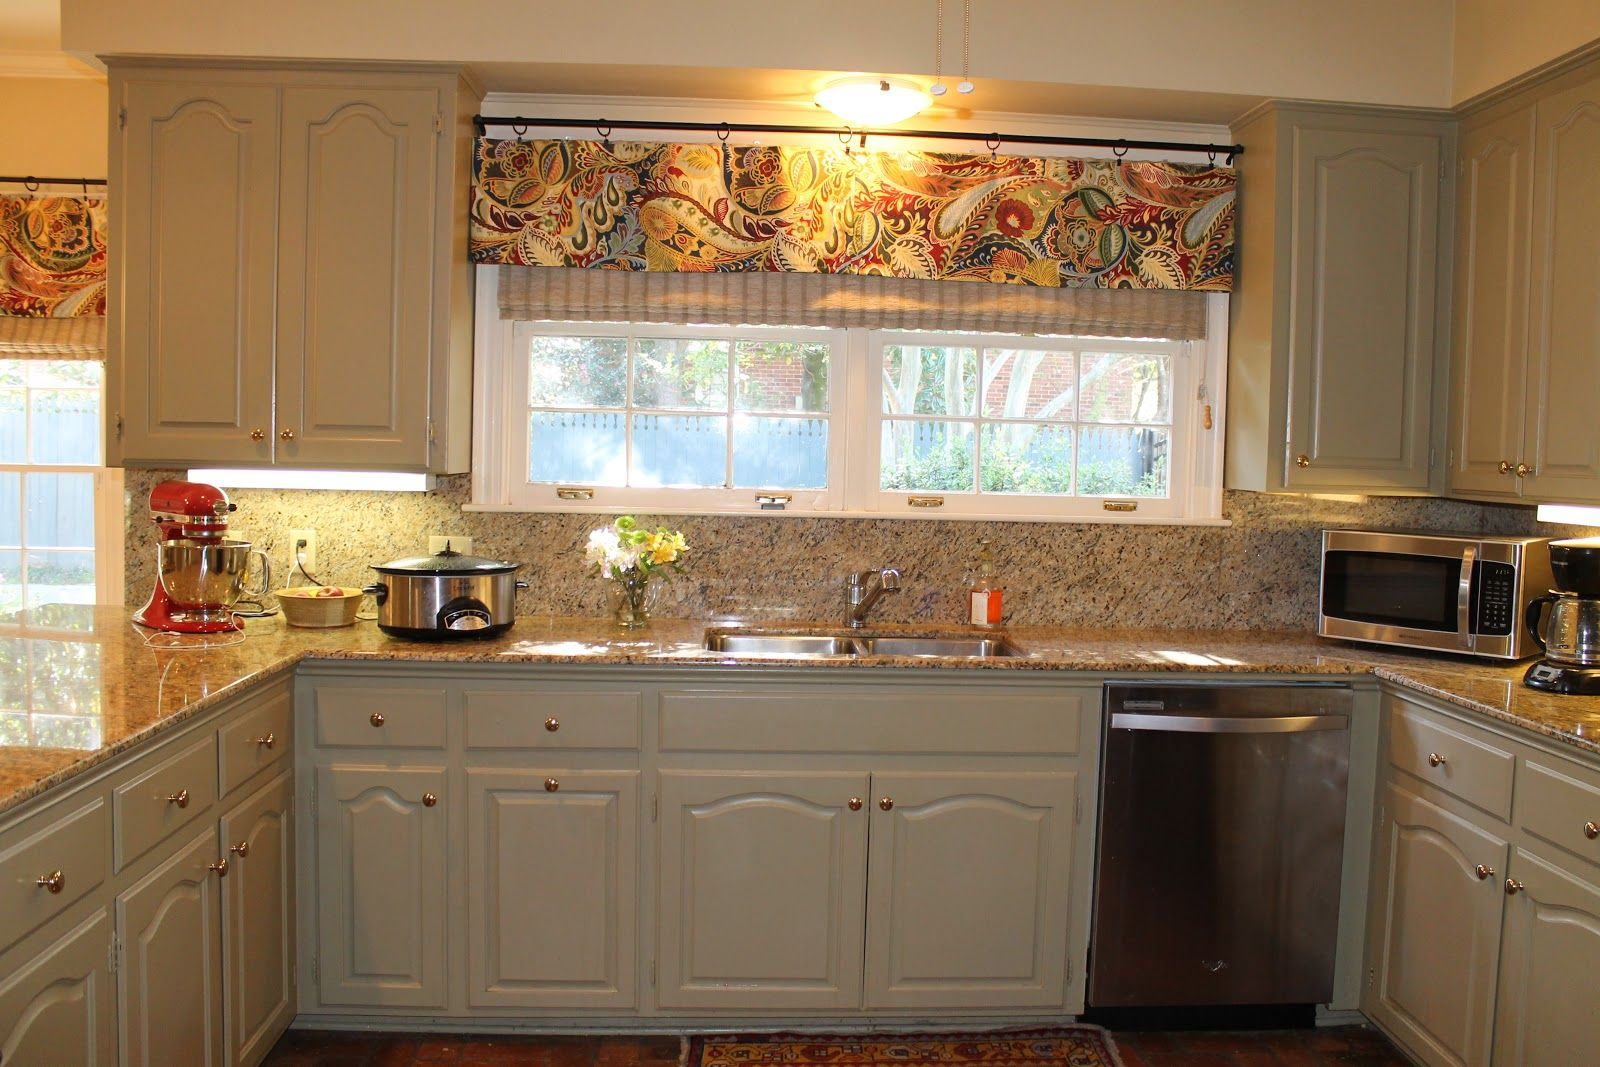 Kitchen window ideas  kitchen fabulous brown fabric over valance  home decor  pinterest